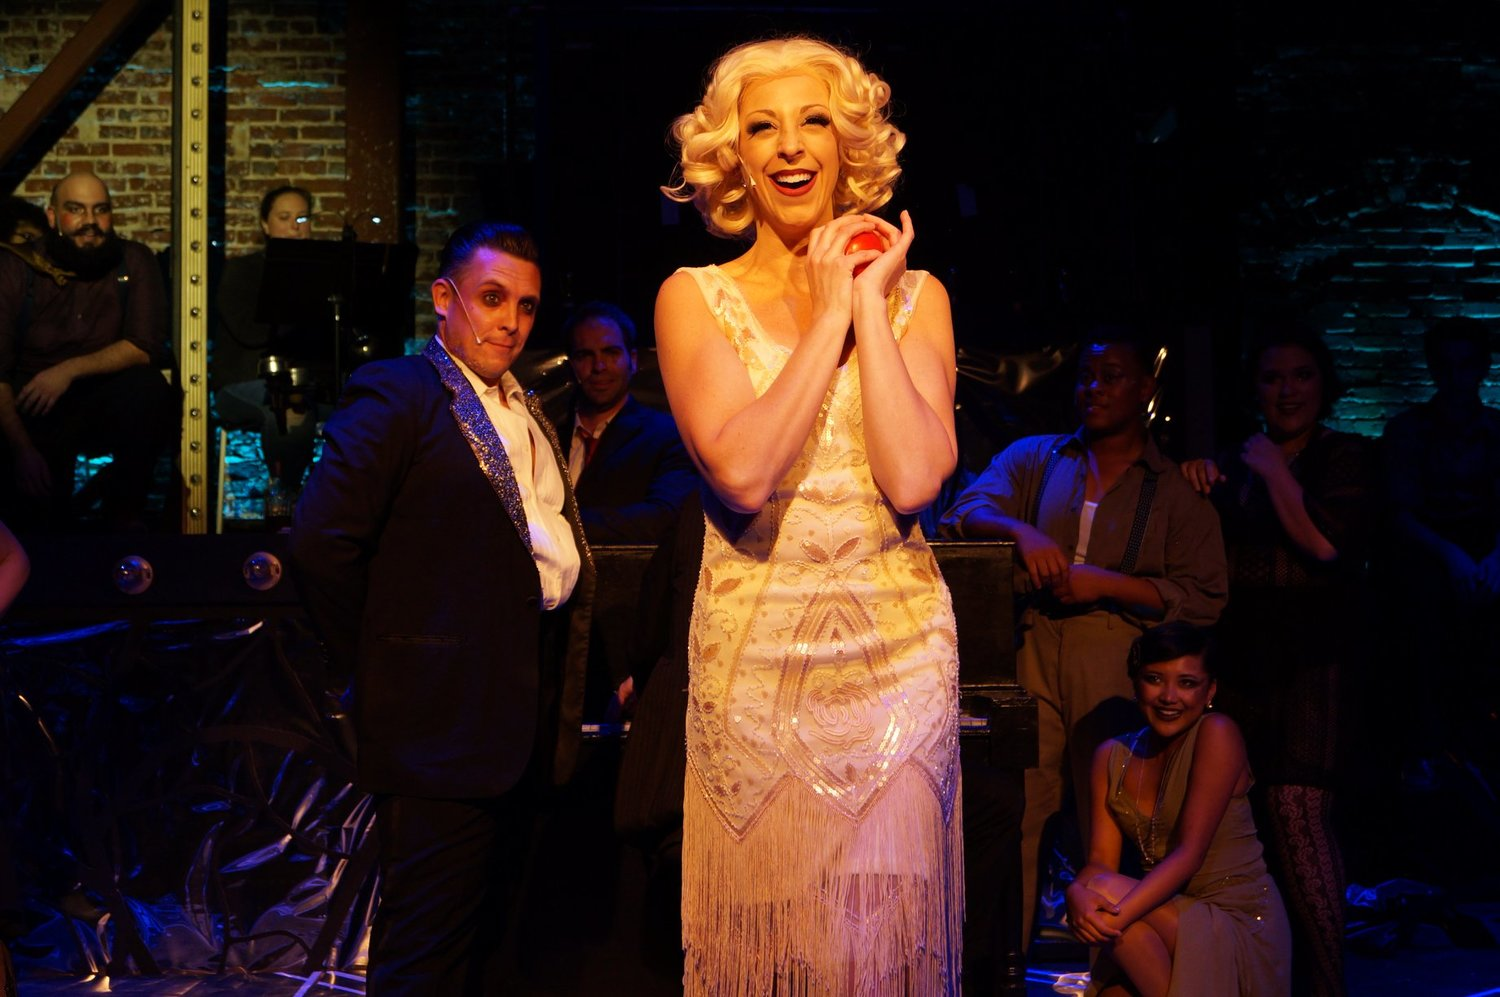 BWW Review: Things Get Naughty in WILD PARTY at Theater West End